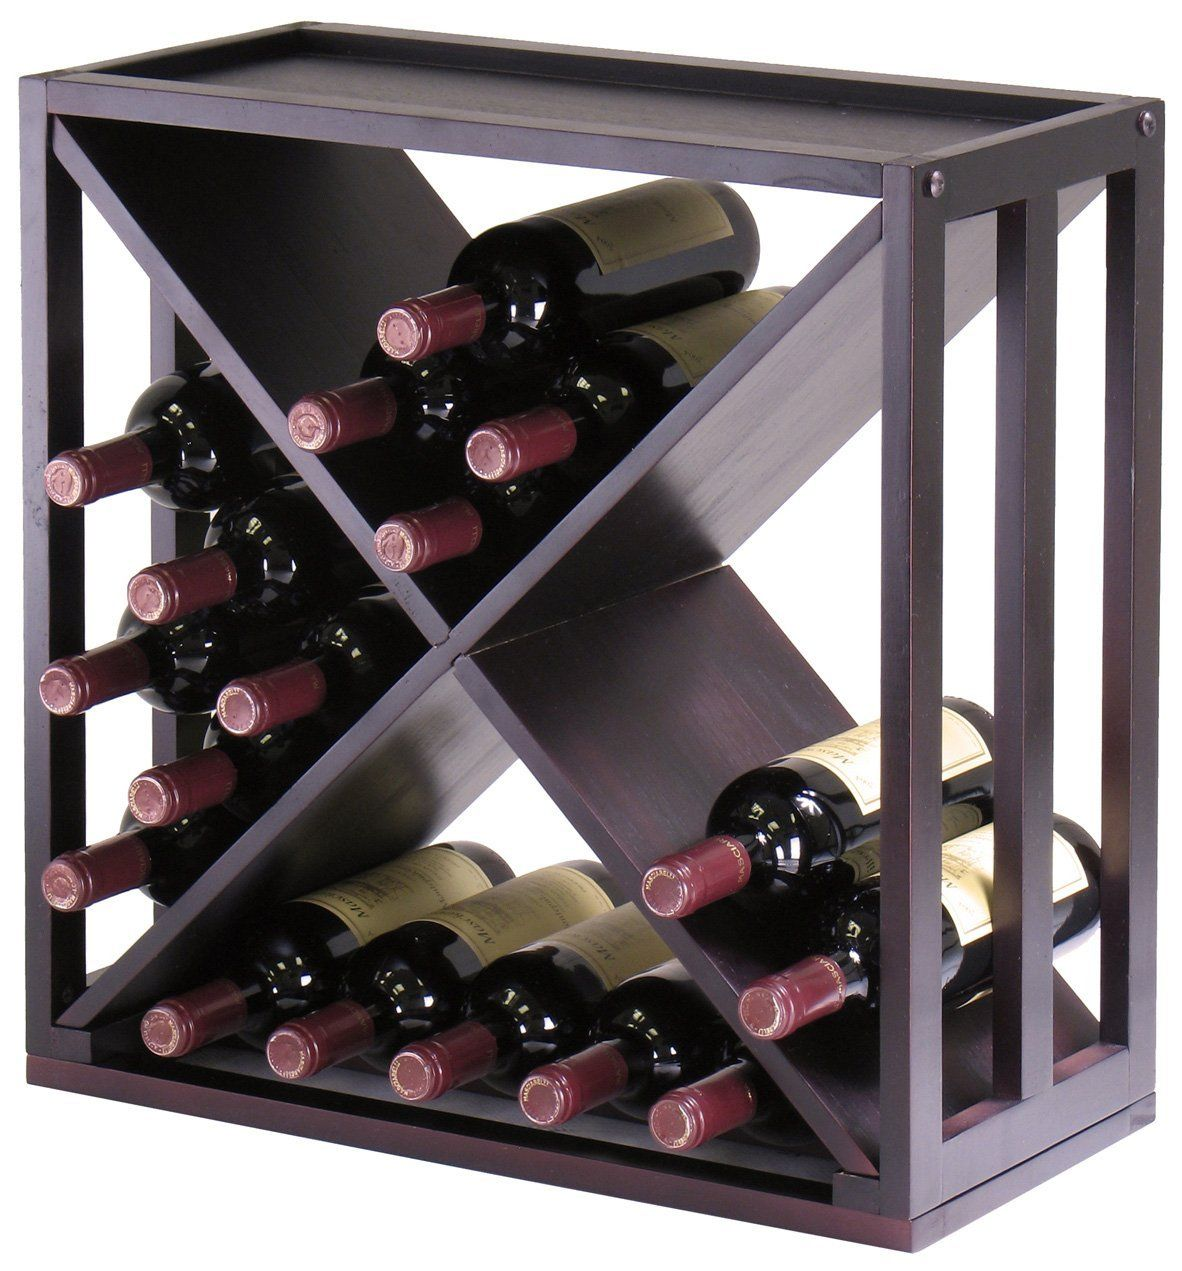 stacking wine picture np bamboo rack amazon stackable bottle shown vert products lipper in international racks